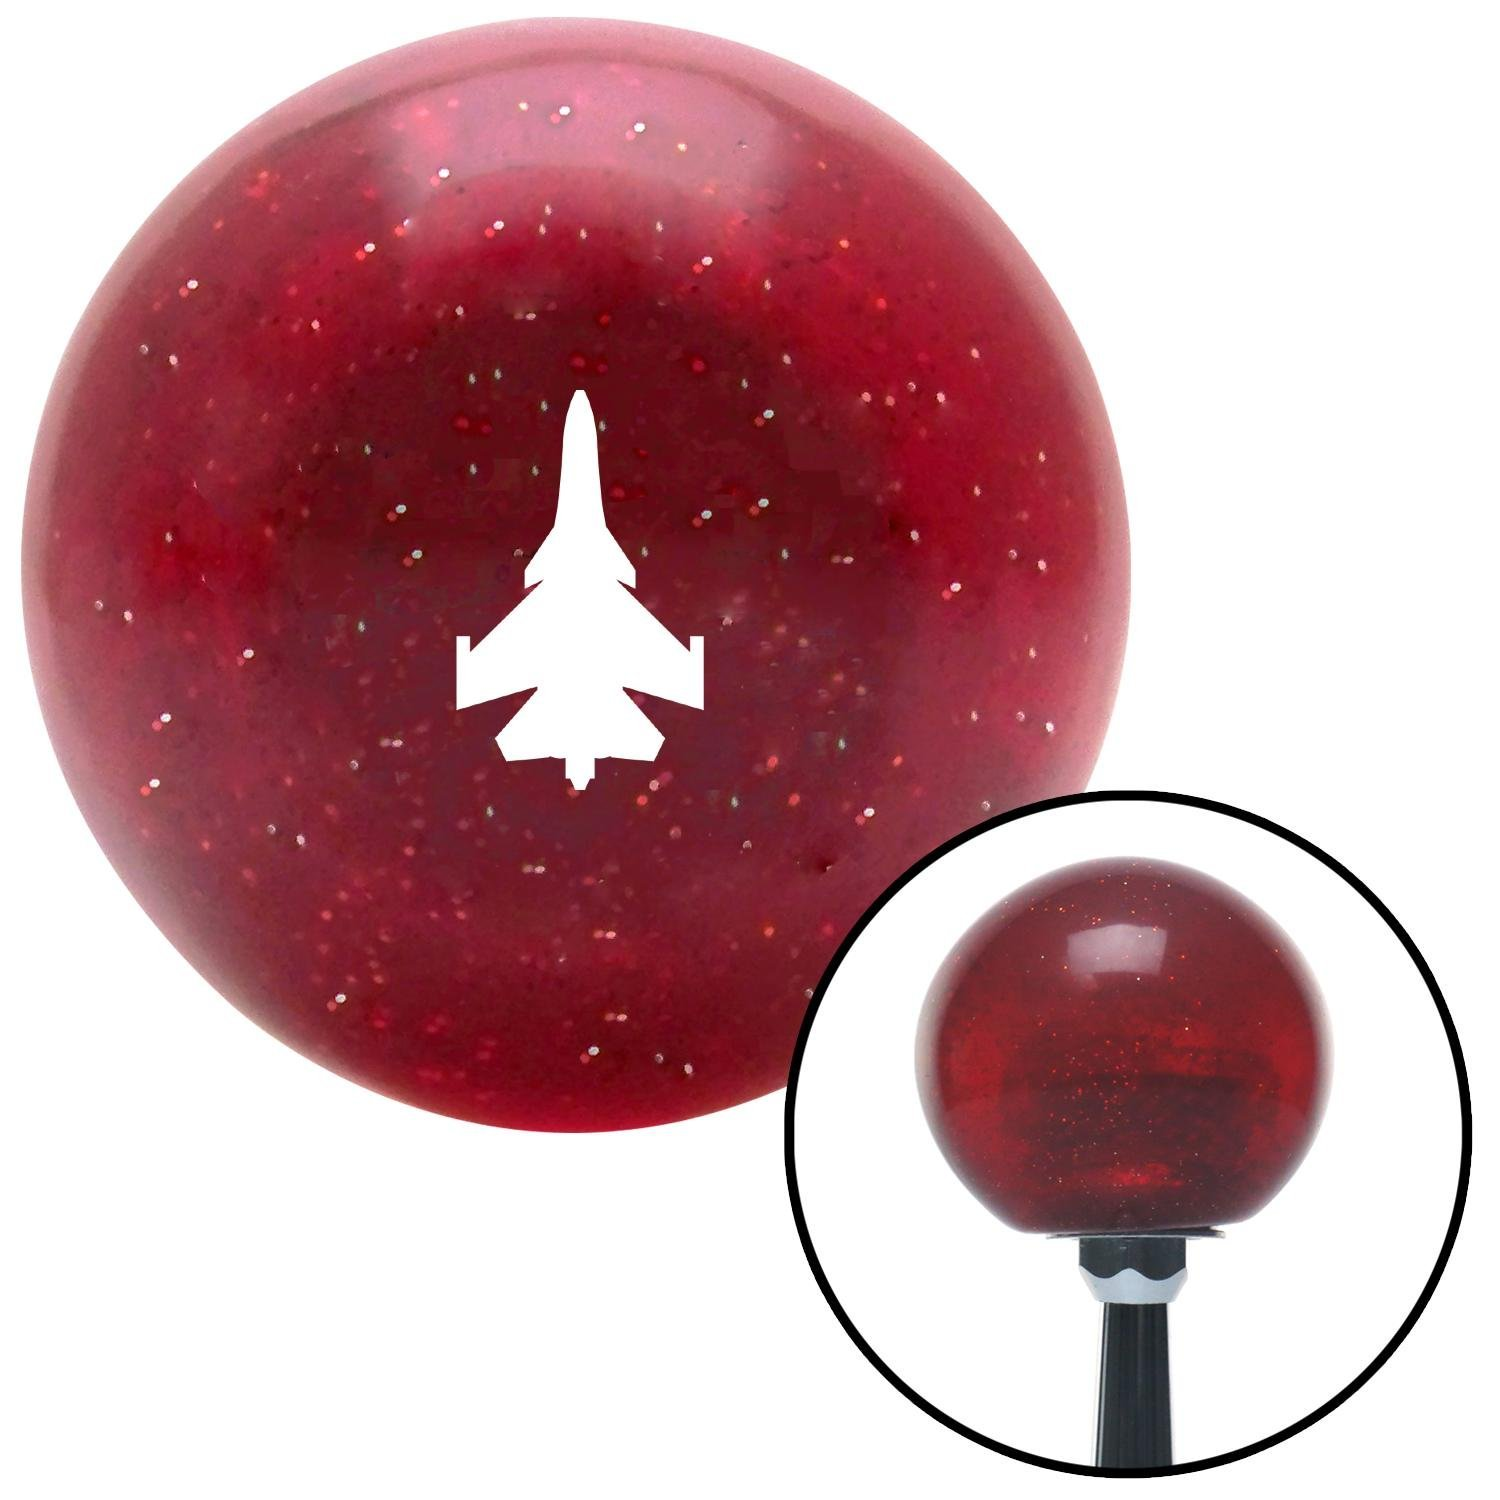 American Shifter 282360 Shift Knob White Jet Red Metal Flake with M16 x 1.5 Insert